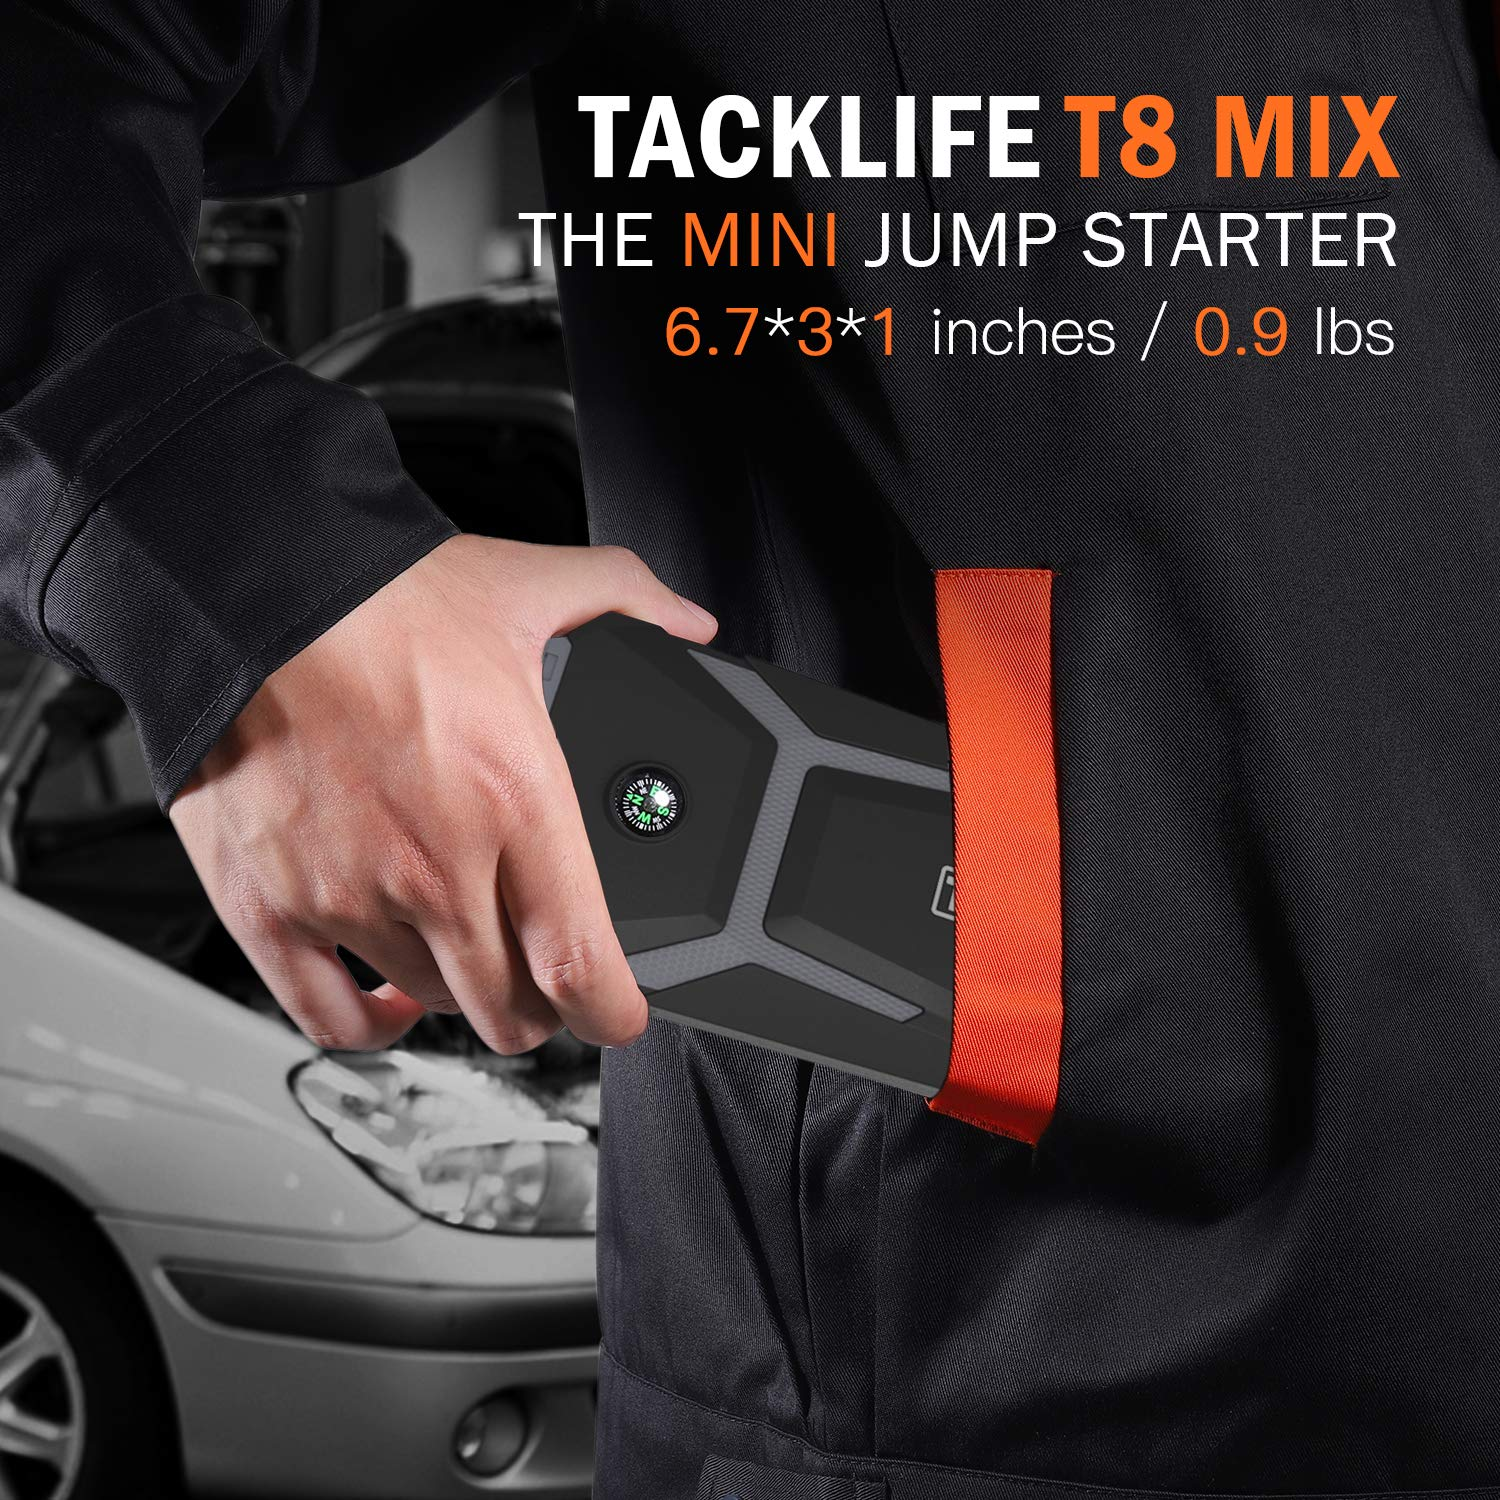 Portable Power Pack with Dual Quick-charge all gas, up to 6.5L diesel engines TACKLIFE T8 MAX Jump Starter 12V Car Battery Booster 1000A Peak 20000mAh 5 LED Light Modes UBS Input